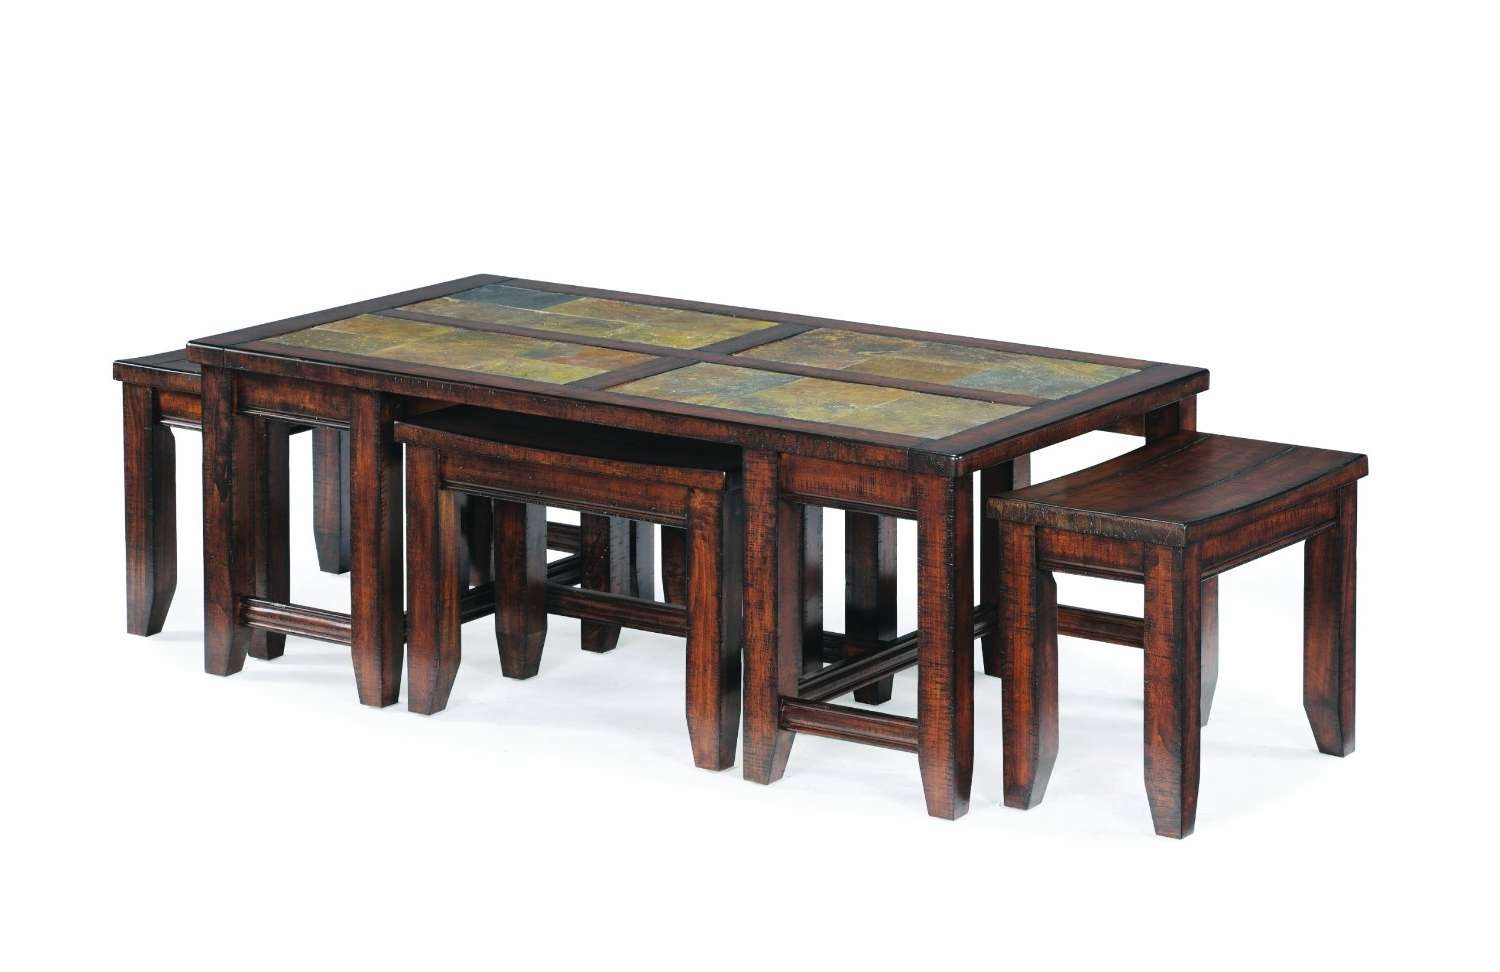 Well Known Coffee Table With Chairs With Furniture (View 9 of 20)